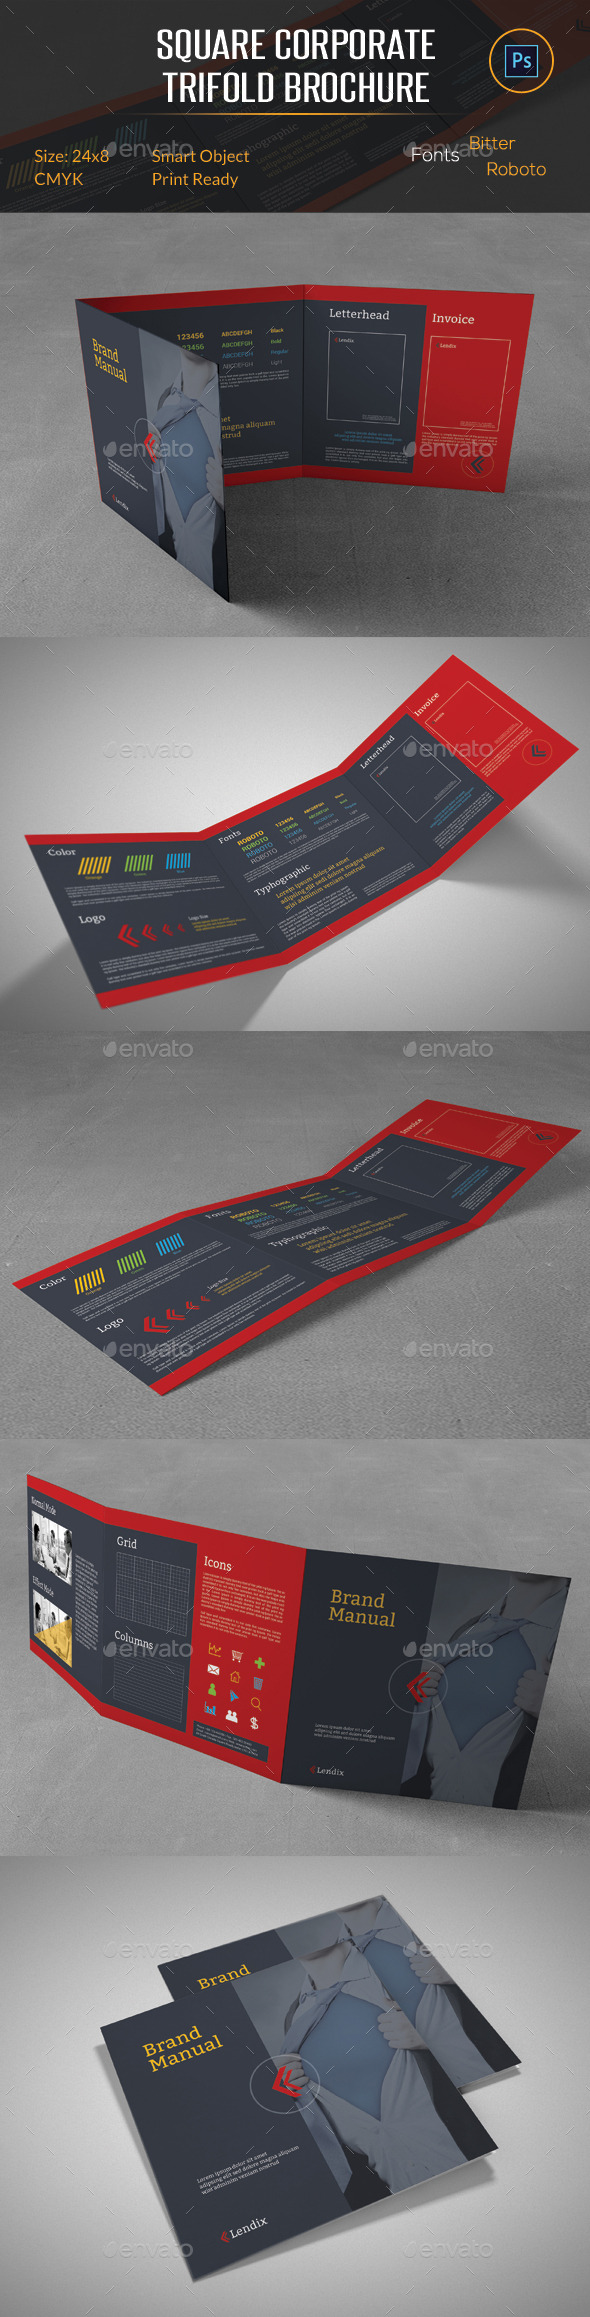 GraphicRiver Brand Manual Square Trifold Brochure 10655643